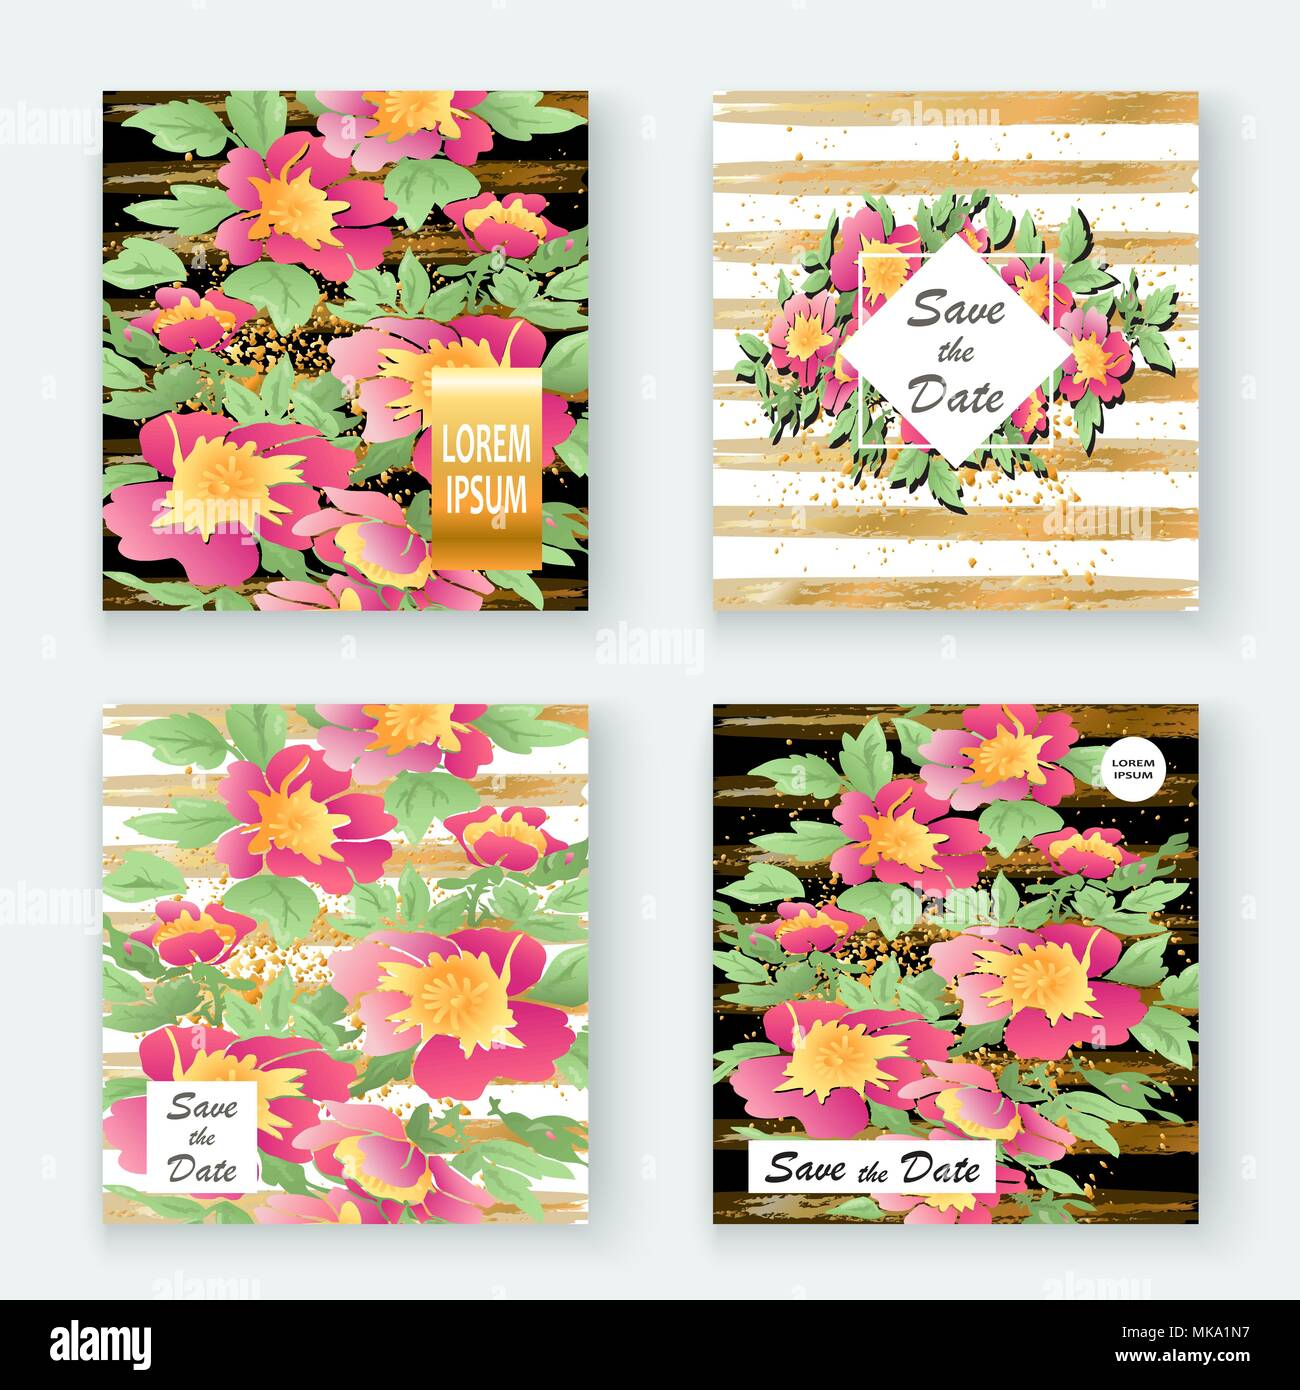 Greeting Cards With Flower Rose Wreath Leaves With Gold Lines White